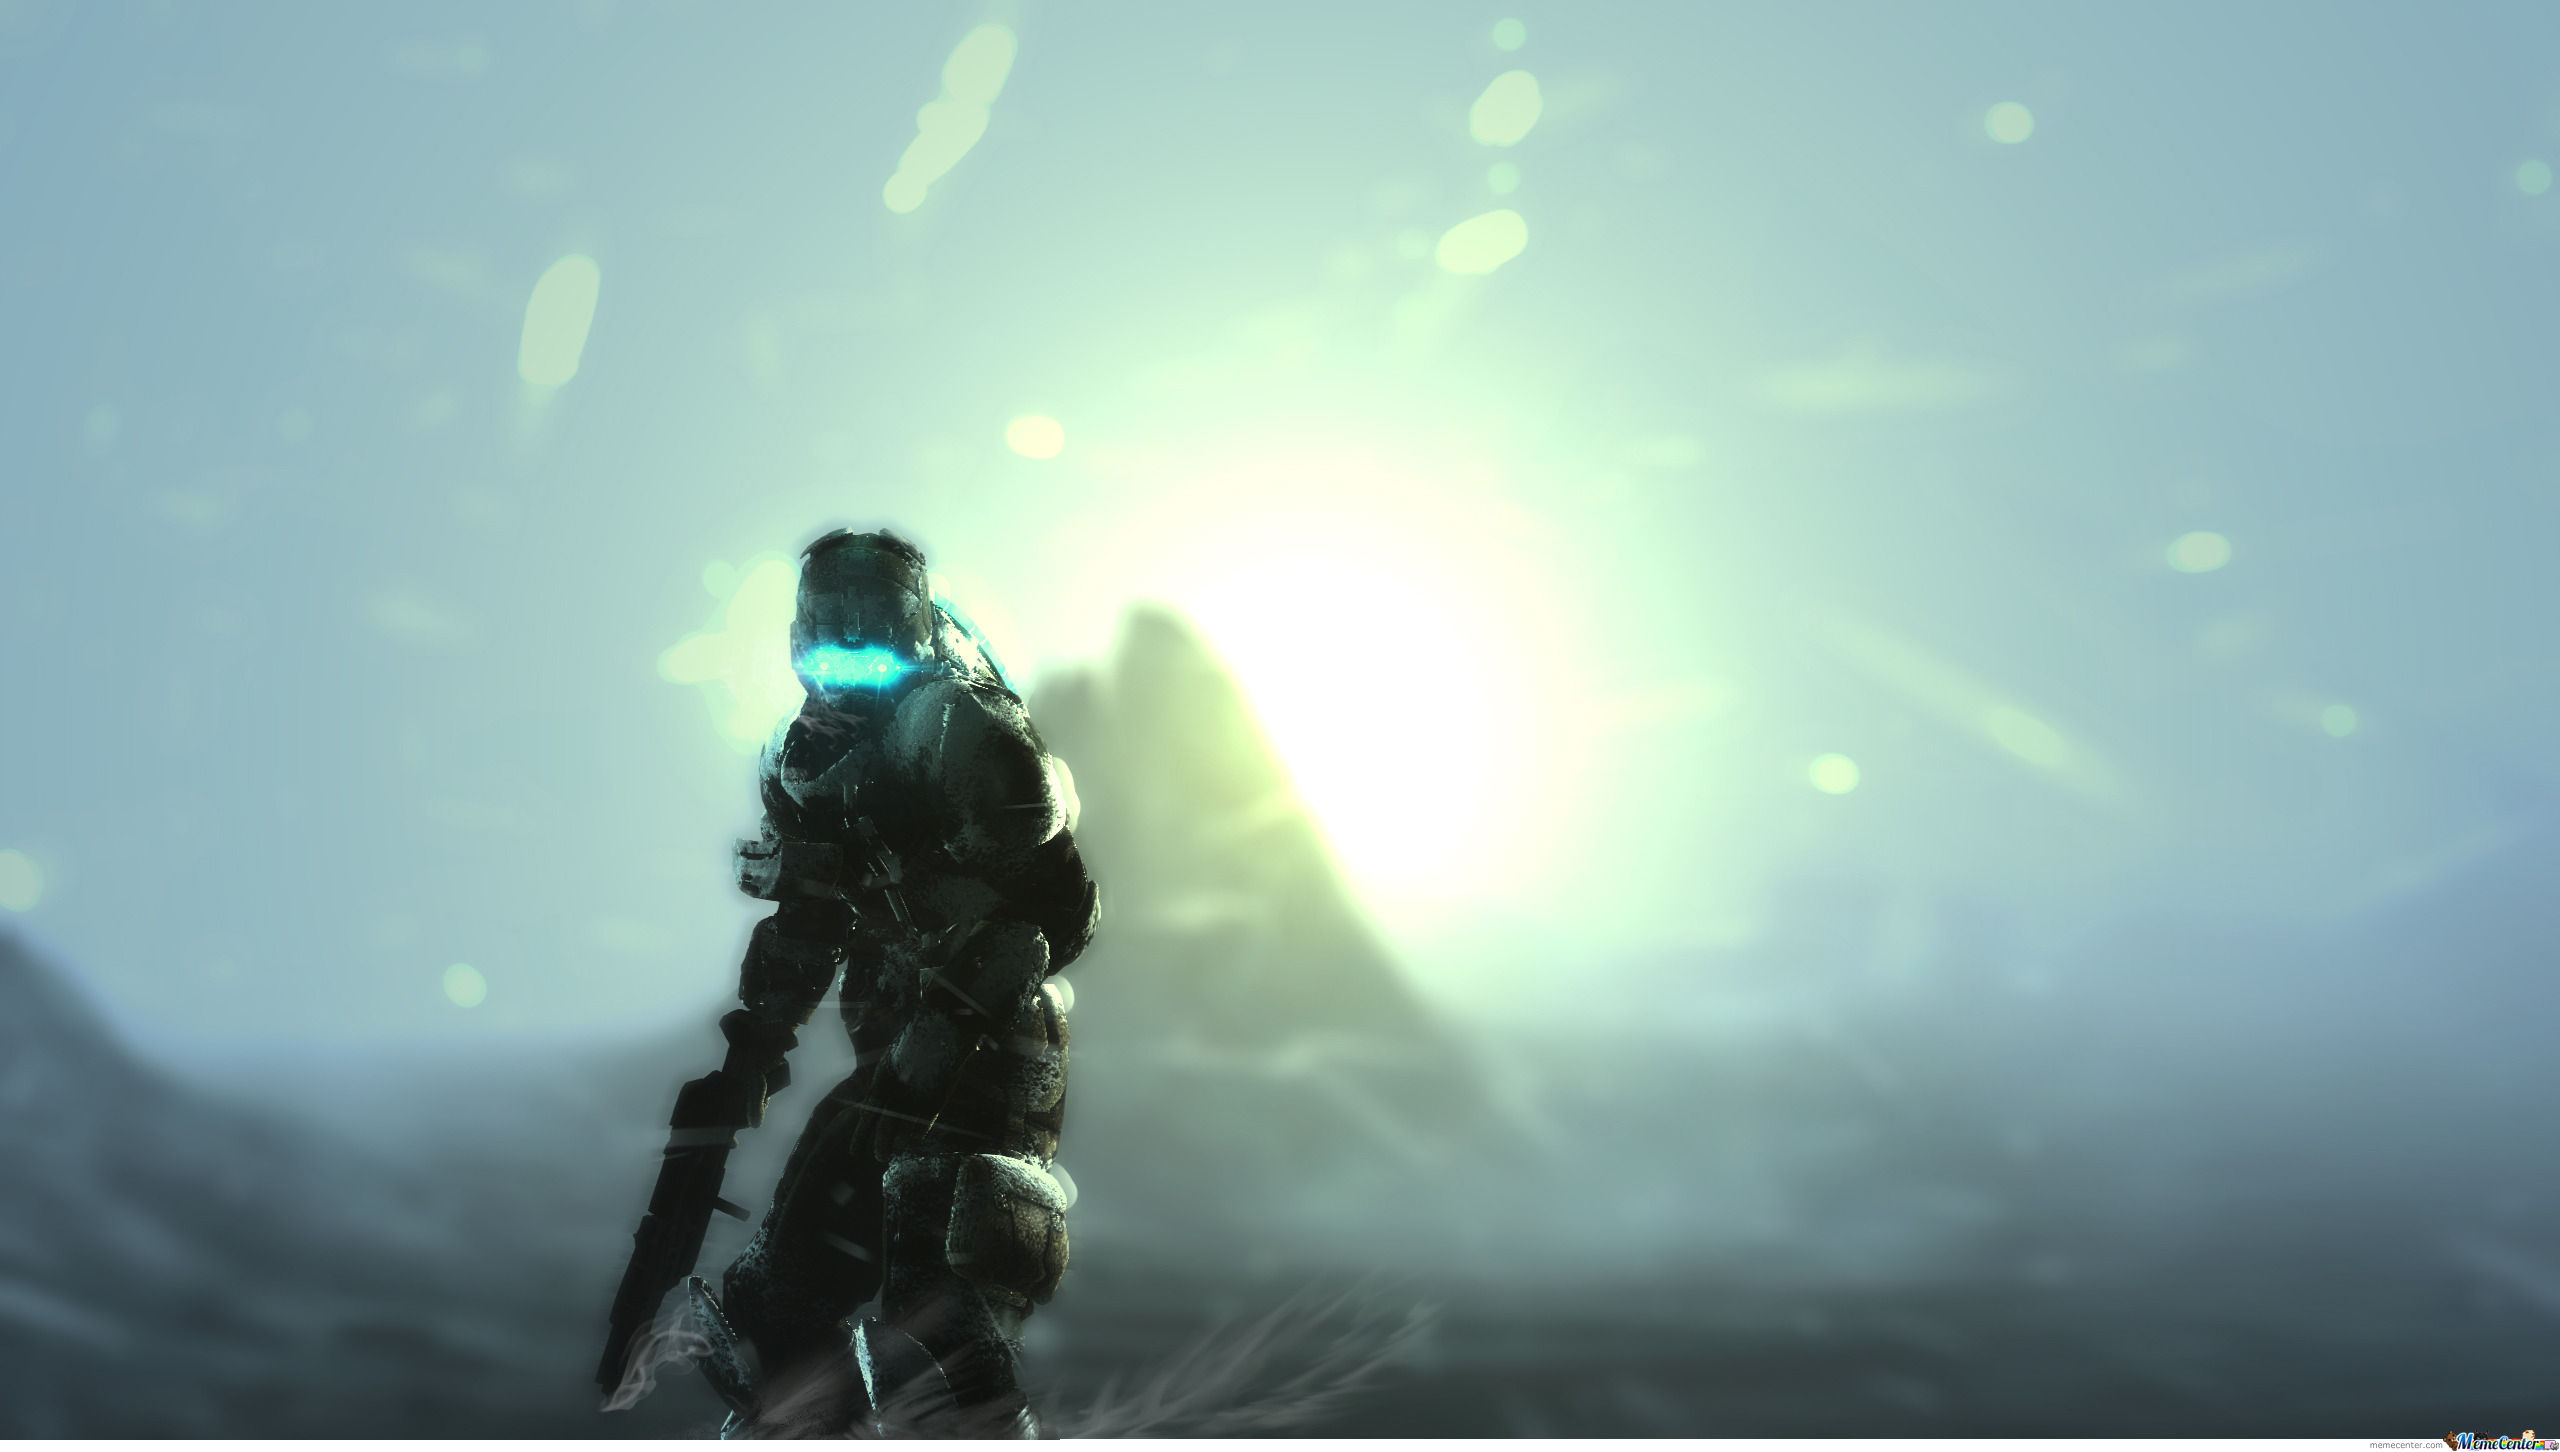 Photoshopped Dead Space 3 Wallpaper I Made - Dead Space 3 , HD Wallpaper & Backgrounds